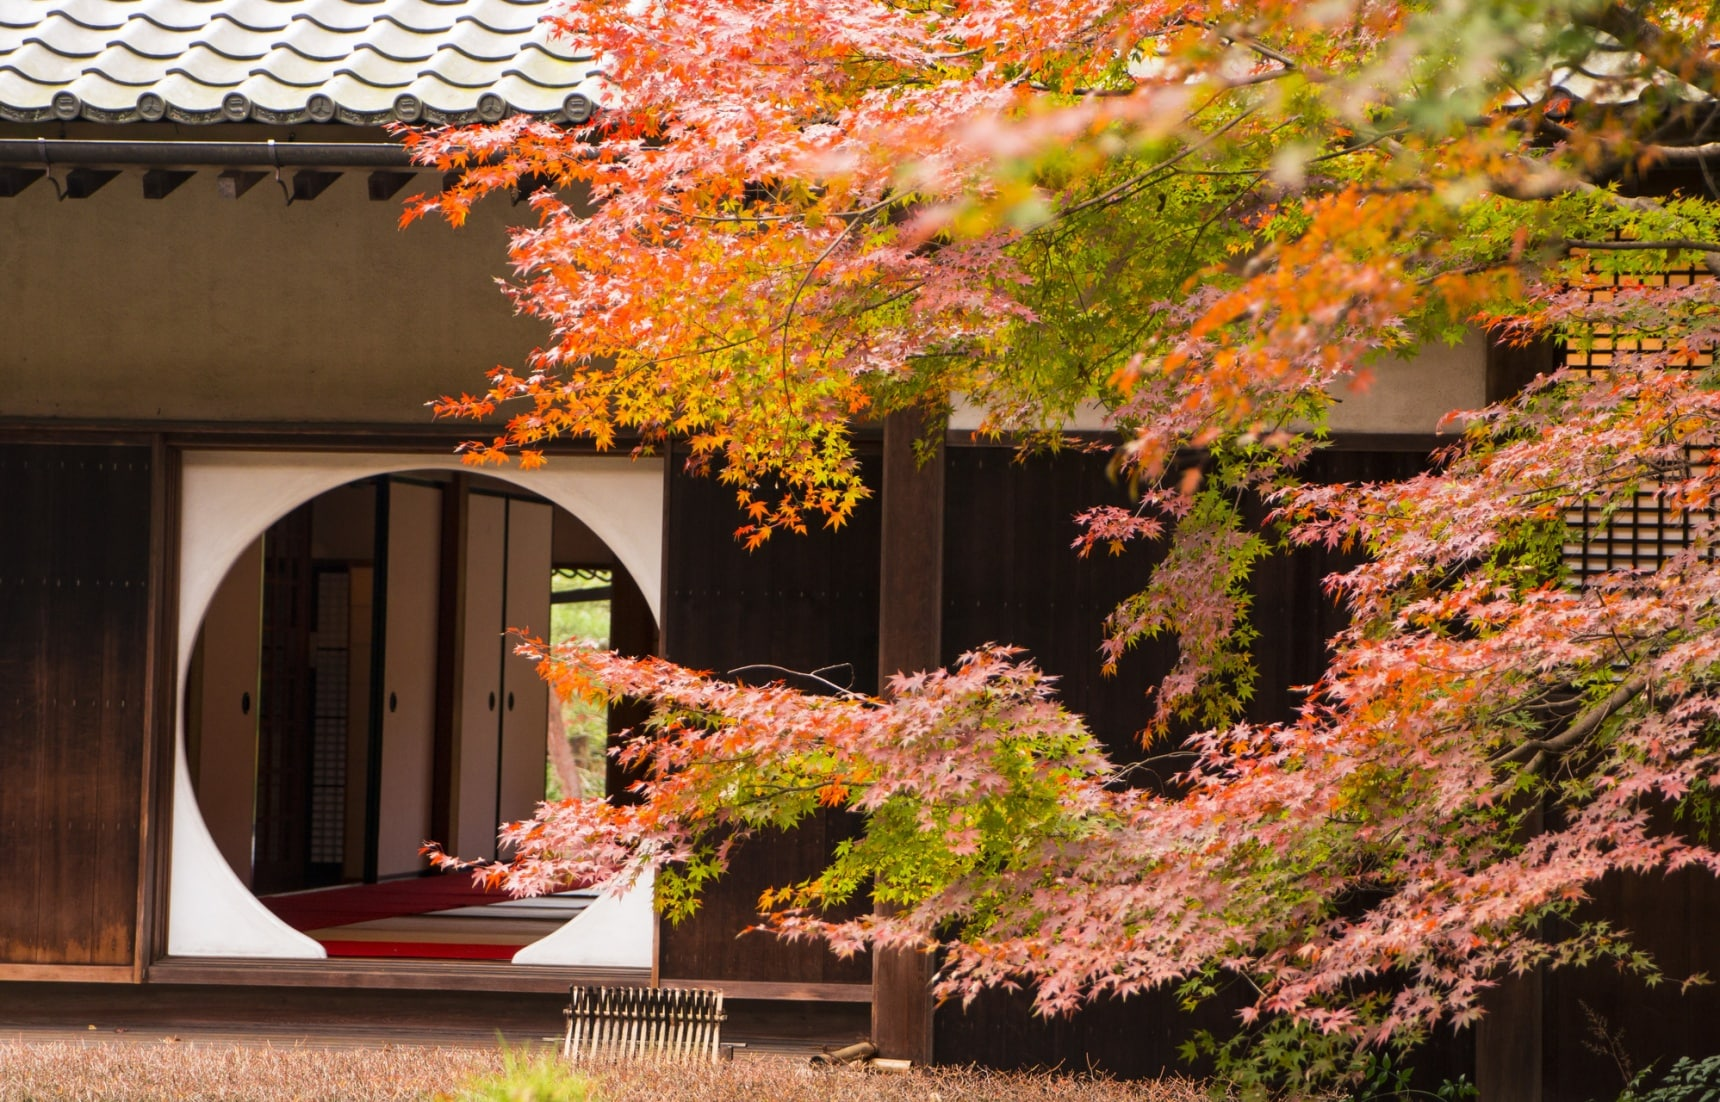 Kamakura's Top 10 Fall Foliage Spots